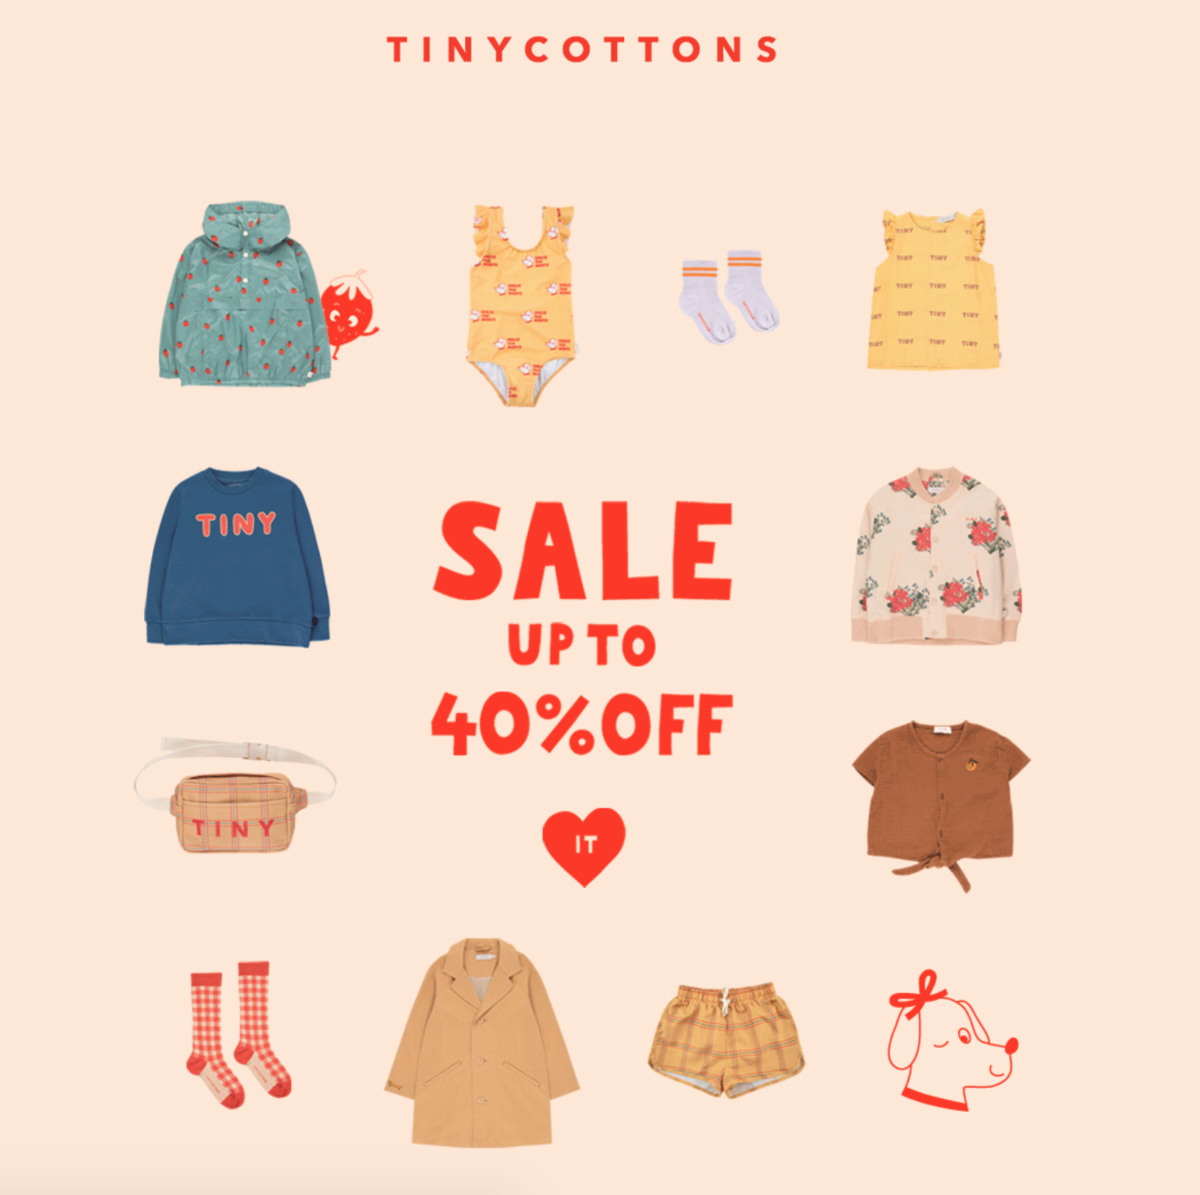 tinycottons sale